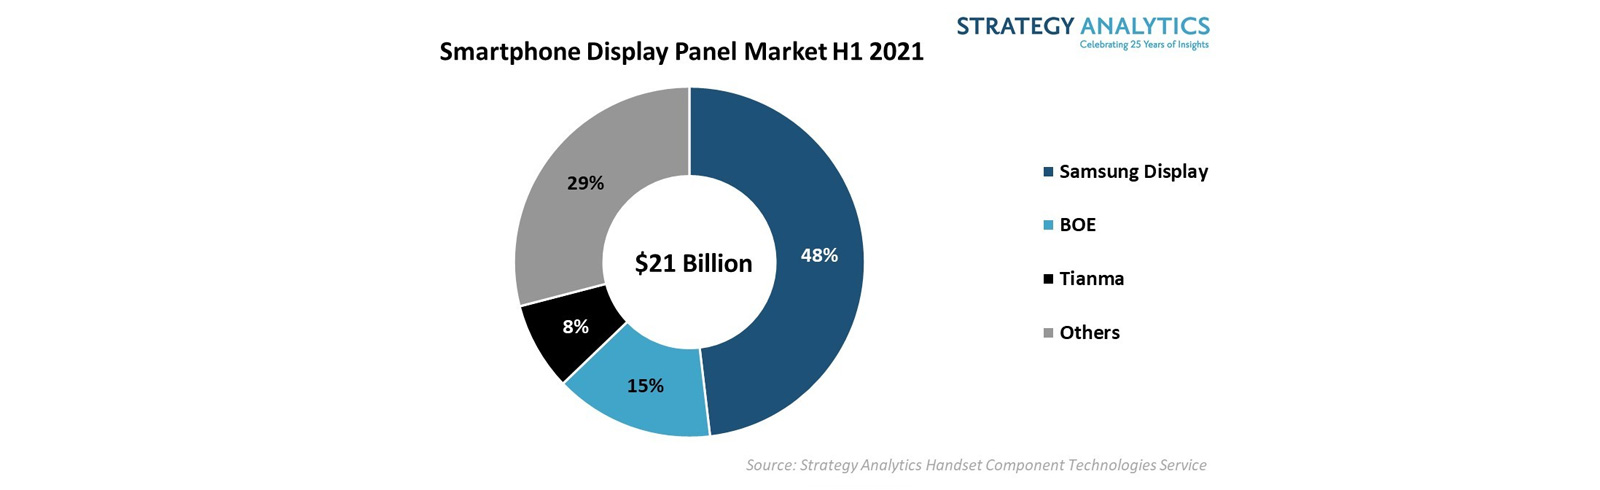 Samsung Display is the top smartphone display panel provided in H1 of 2021 with a 48% share